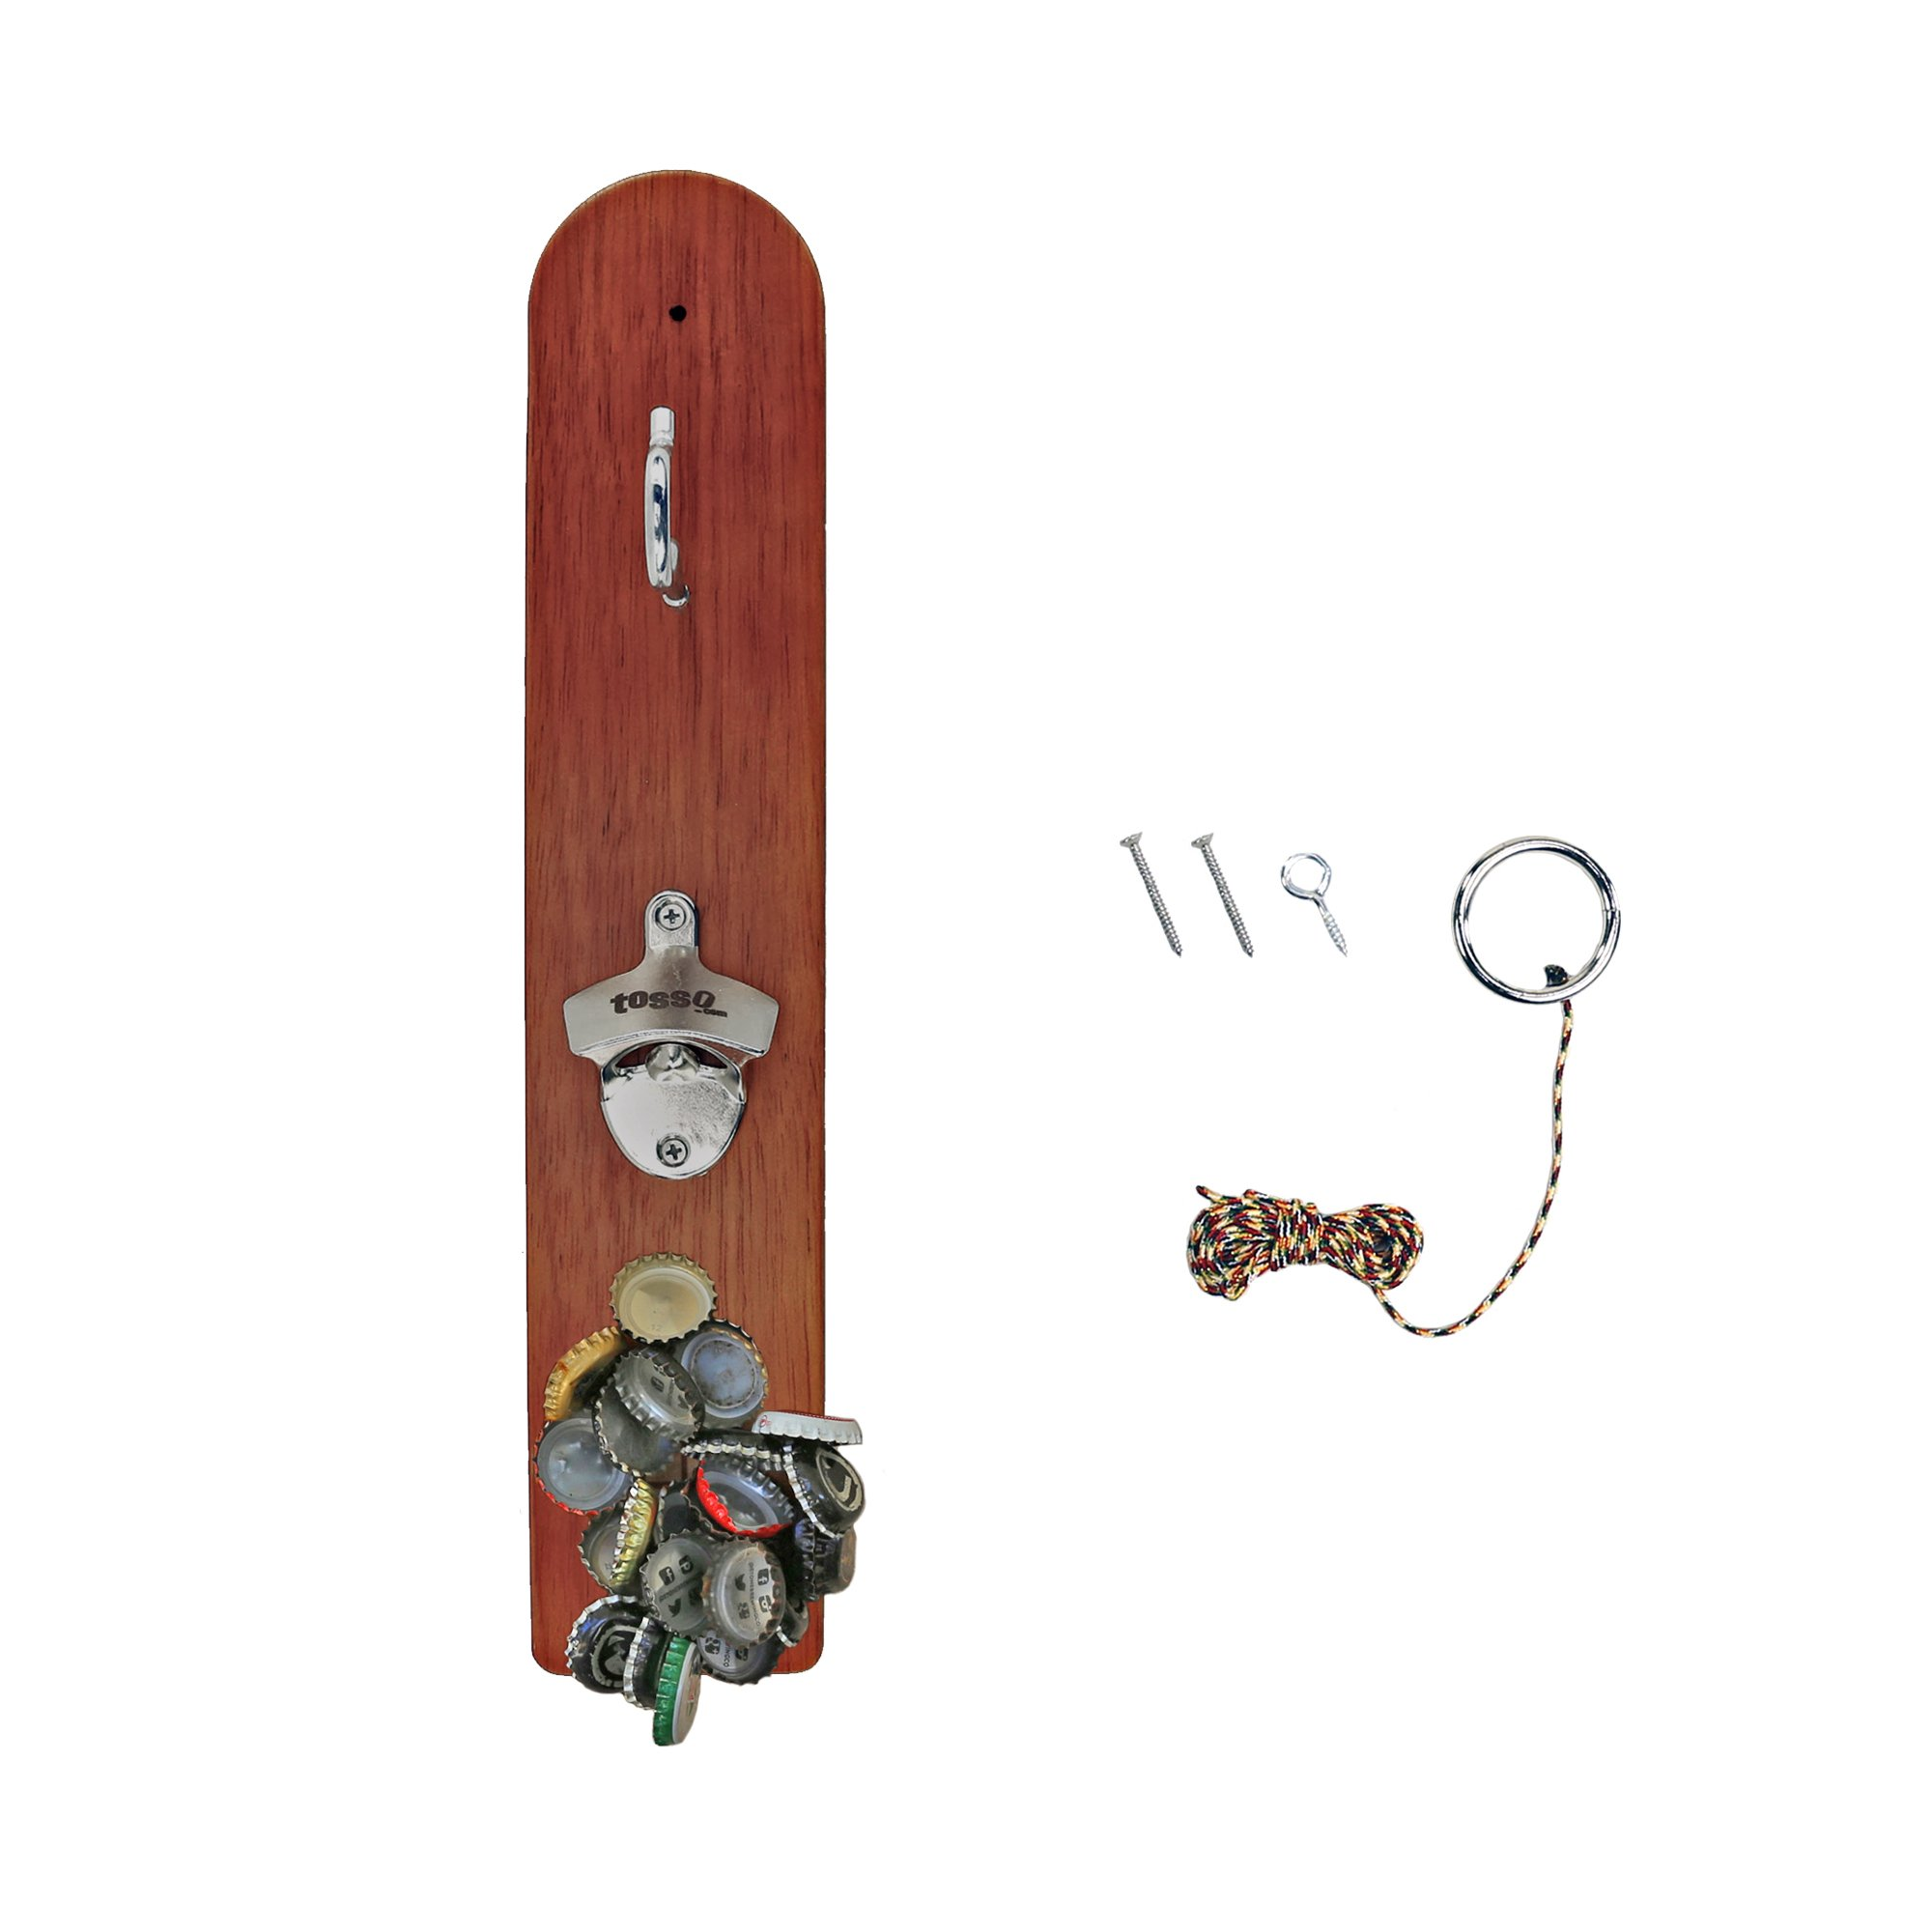 Hammer Crown Hook and Ring Game with Bottle Opener and Magnetic Bottle Cap Catch by Hammer Crown